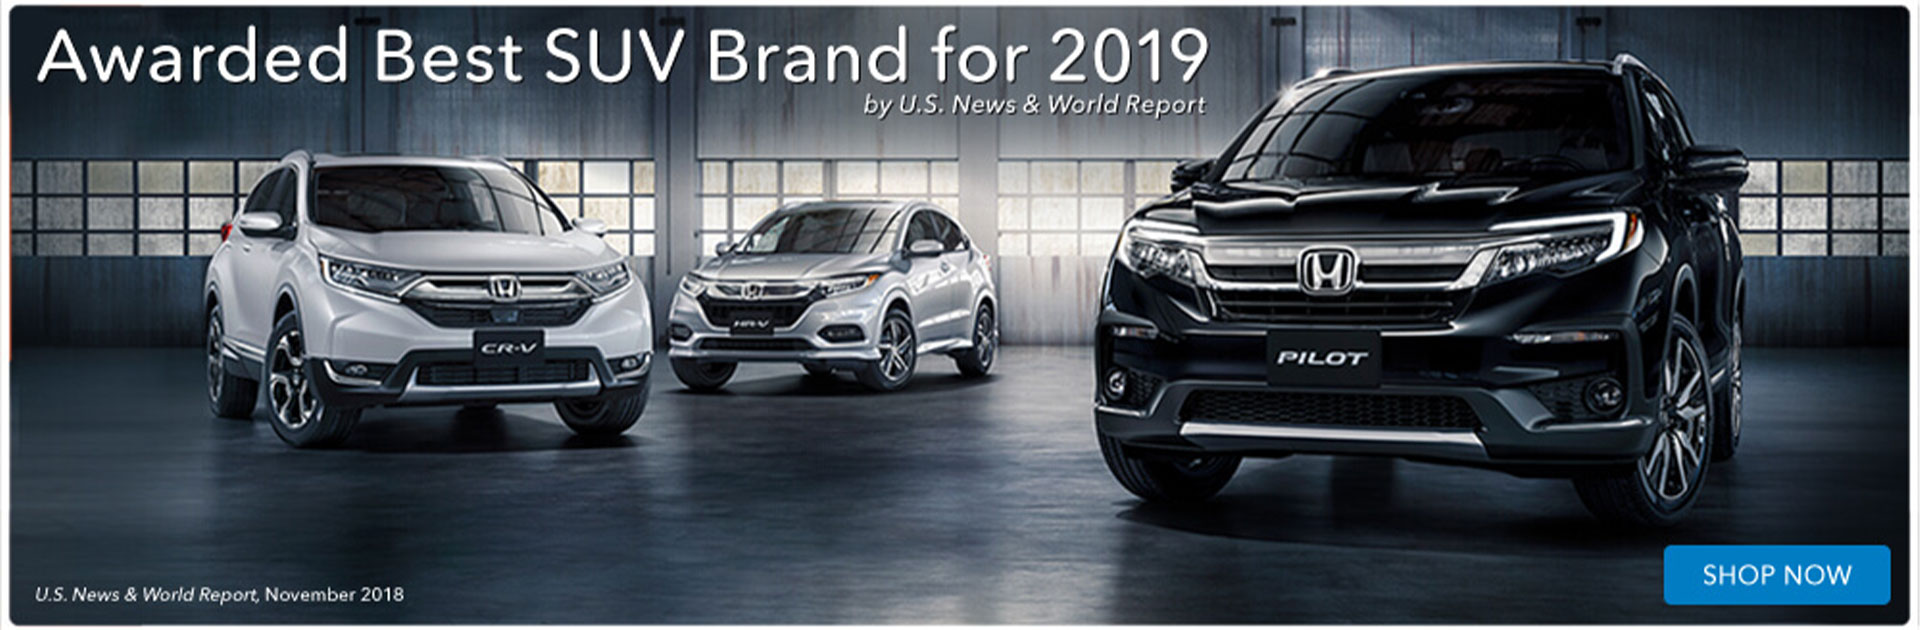 Awarded Best SUV Brand for 2019